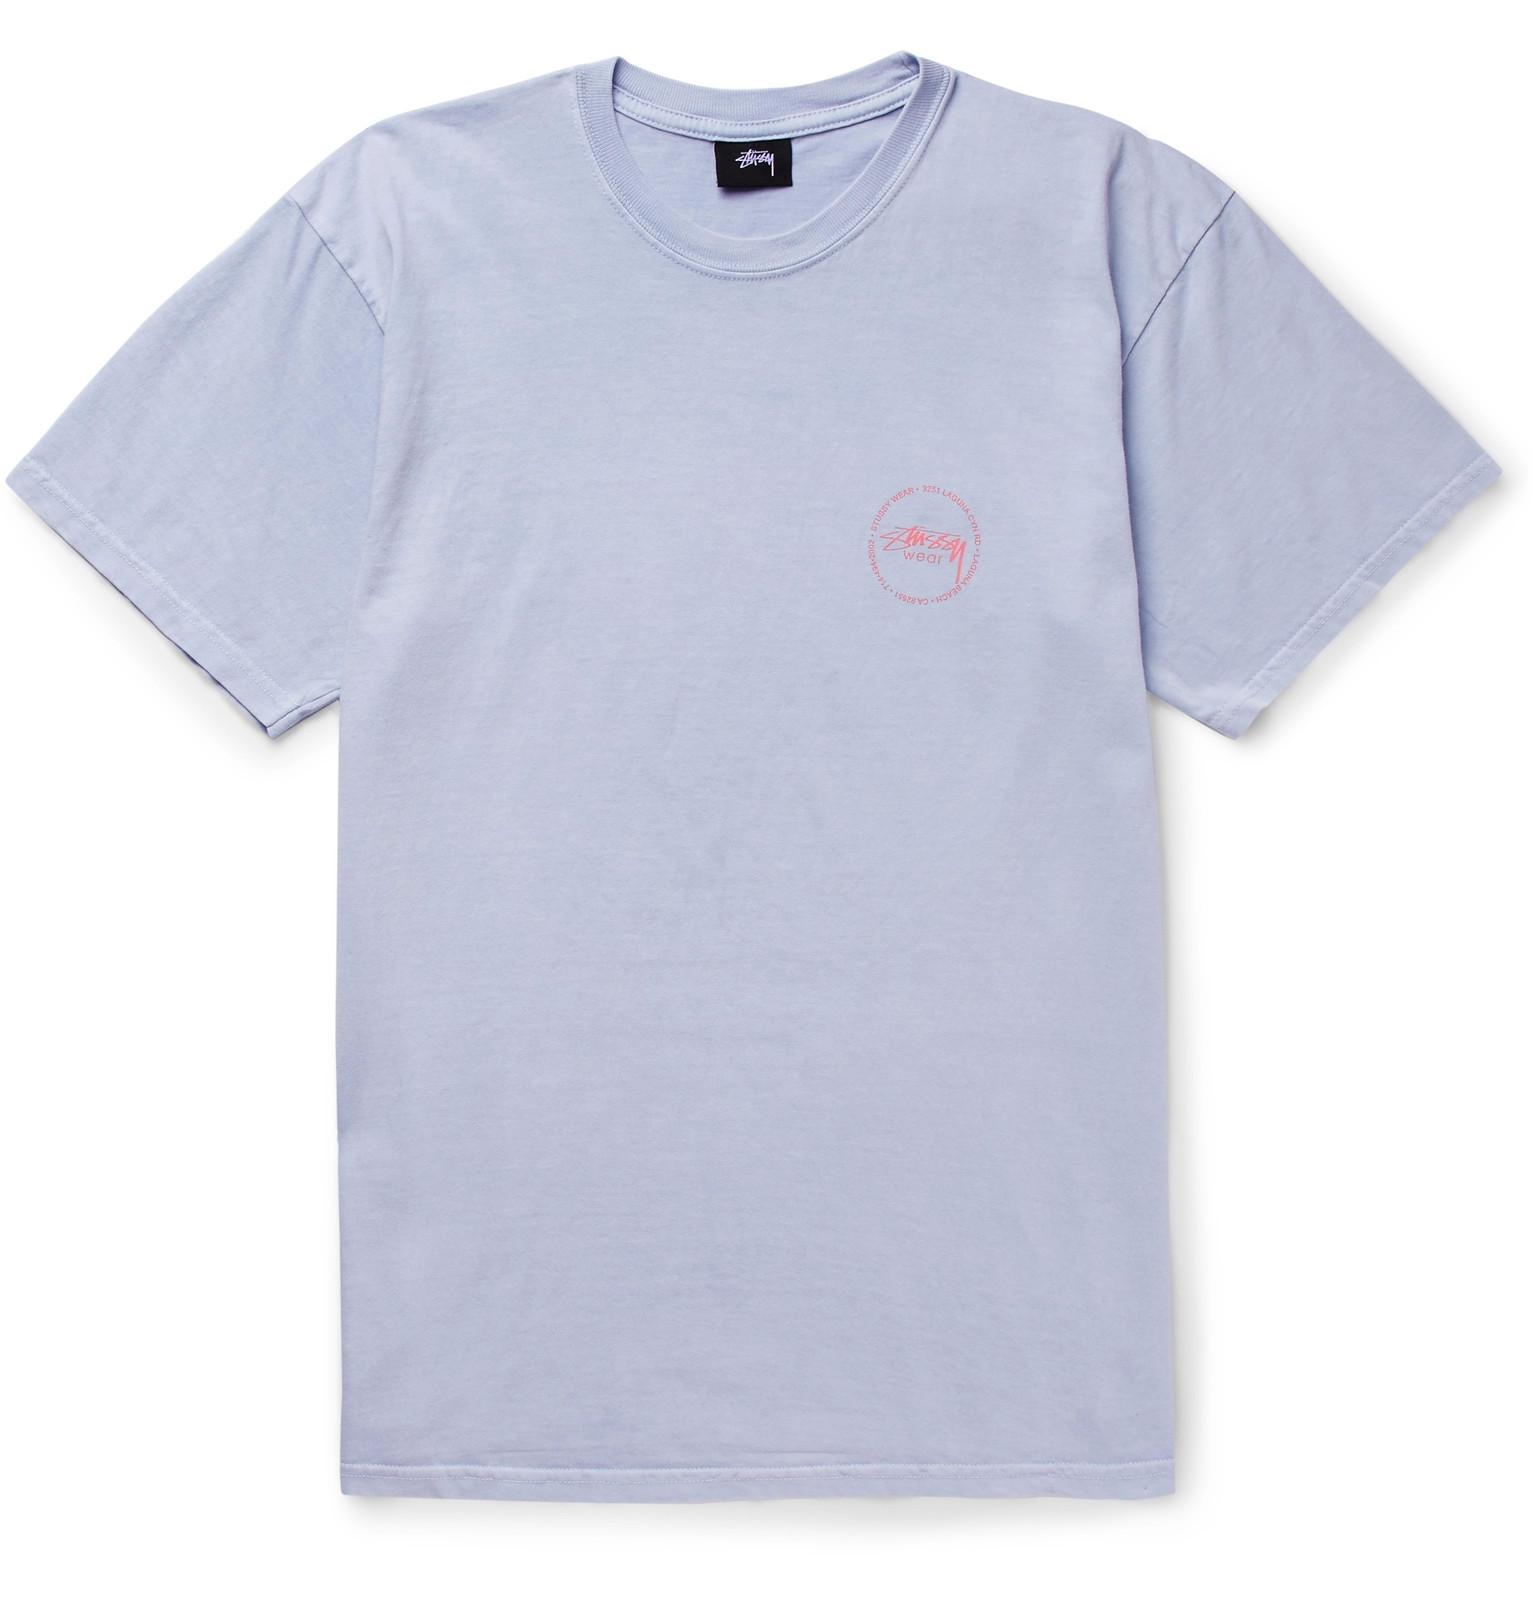 Stussy Old Stamp Printed Cotton Jersey T Shirt In Blue For